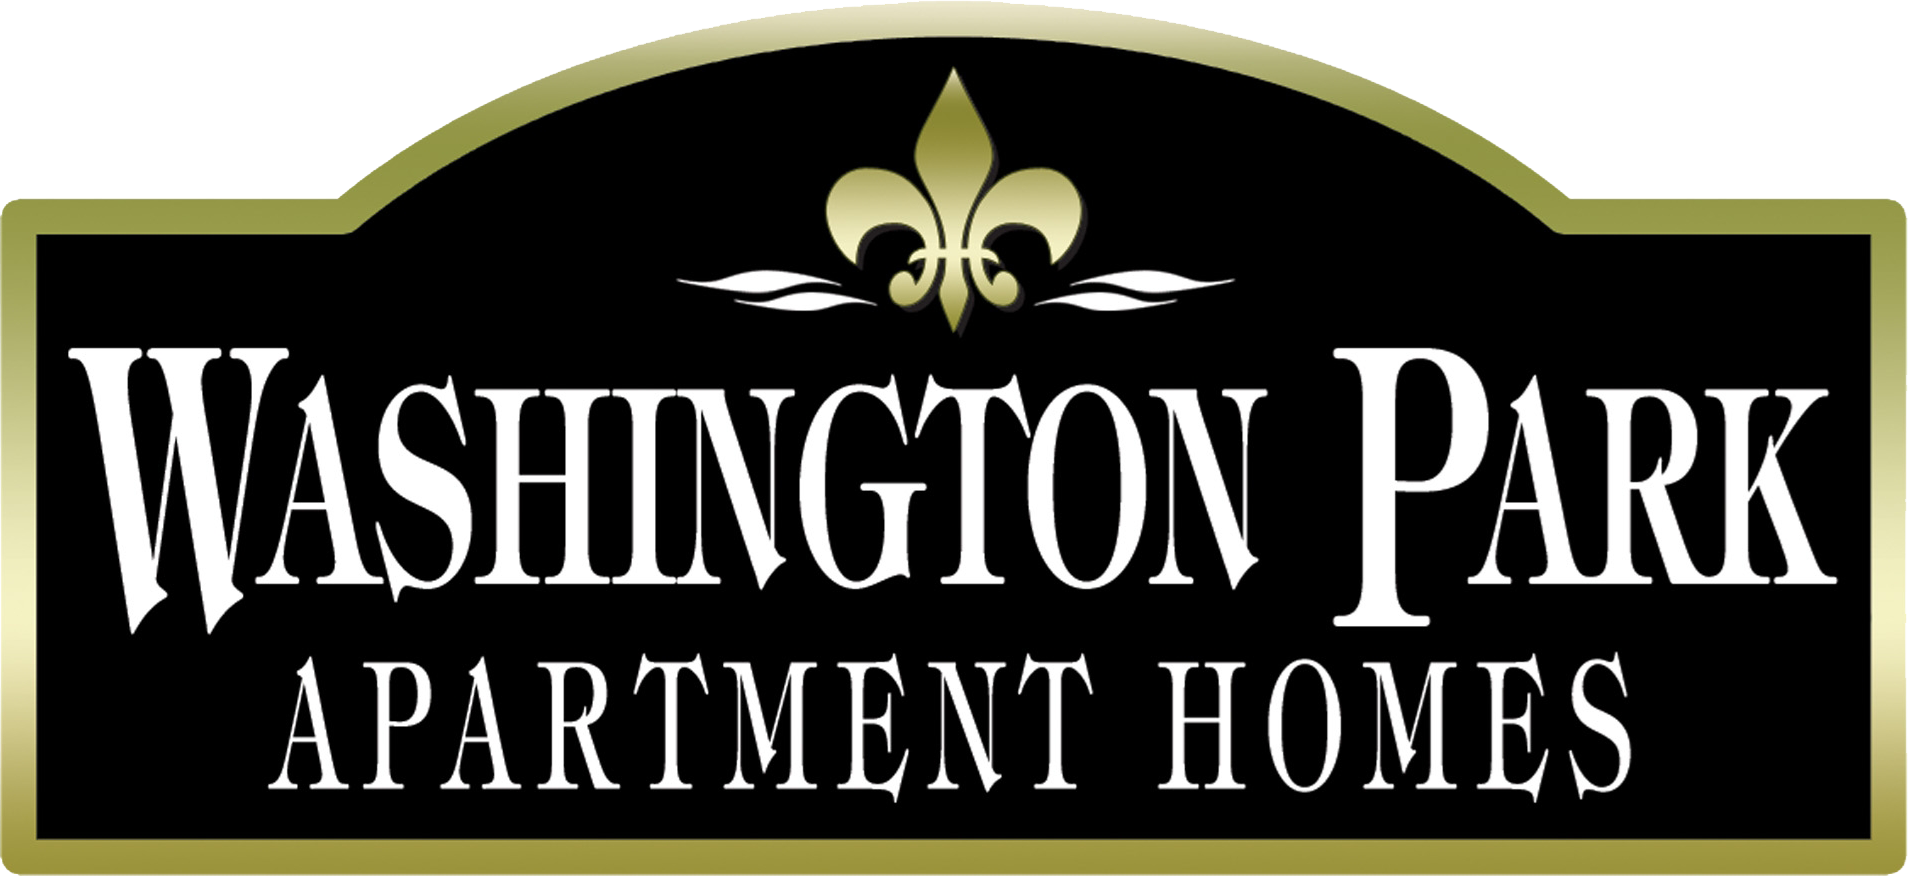 Washington Park Apartments in Centerville, Ohio Logo